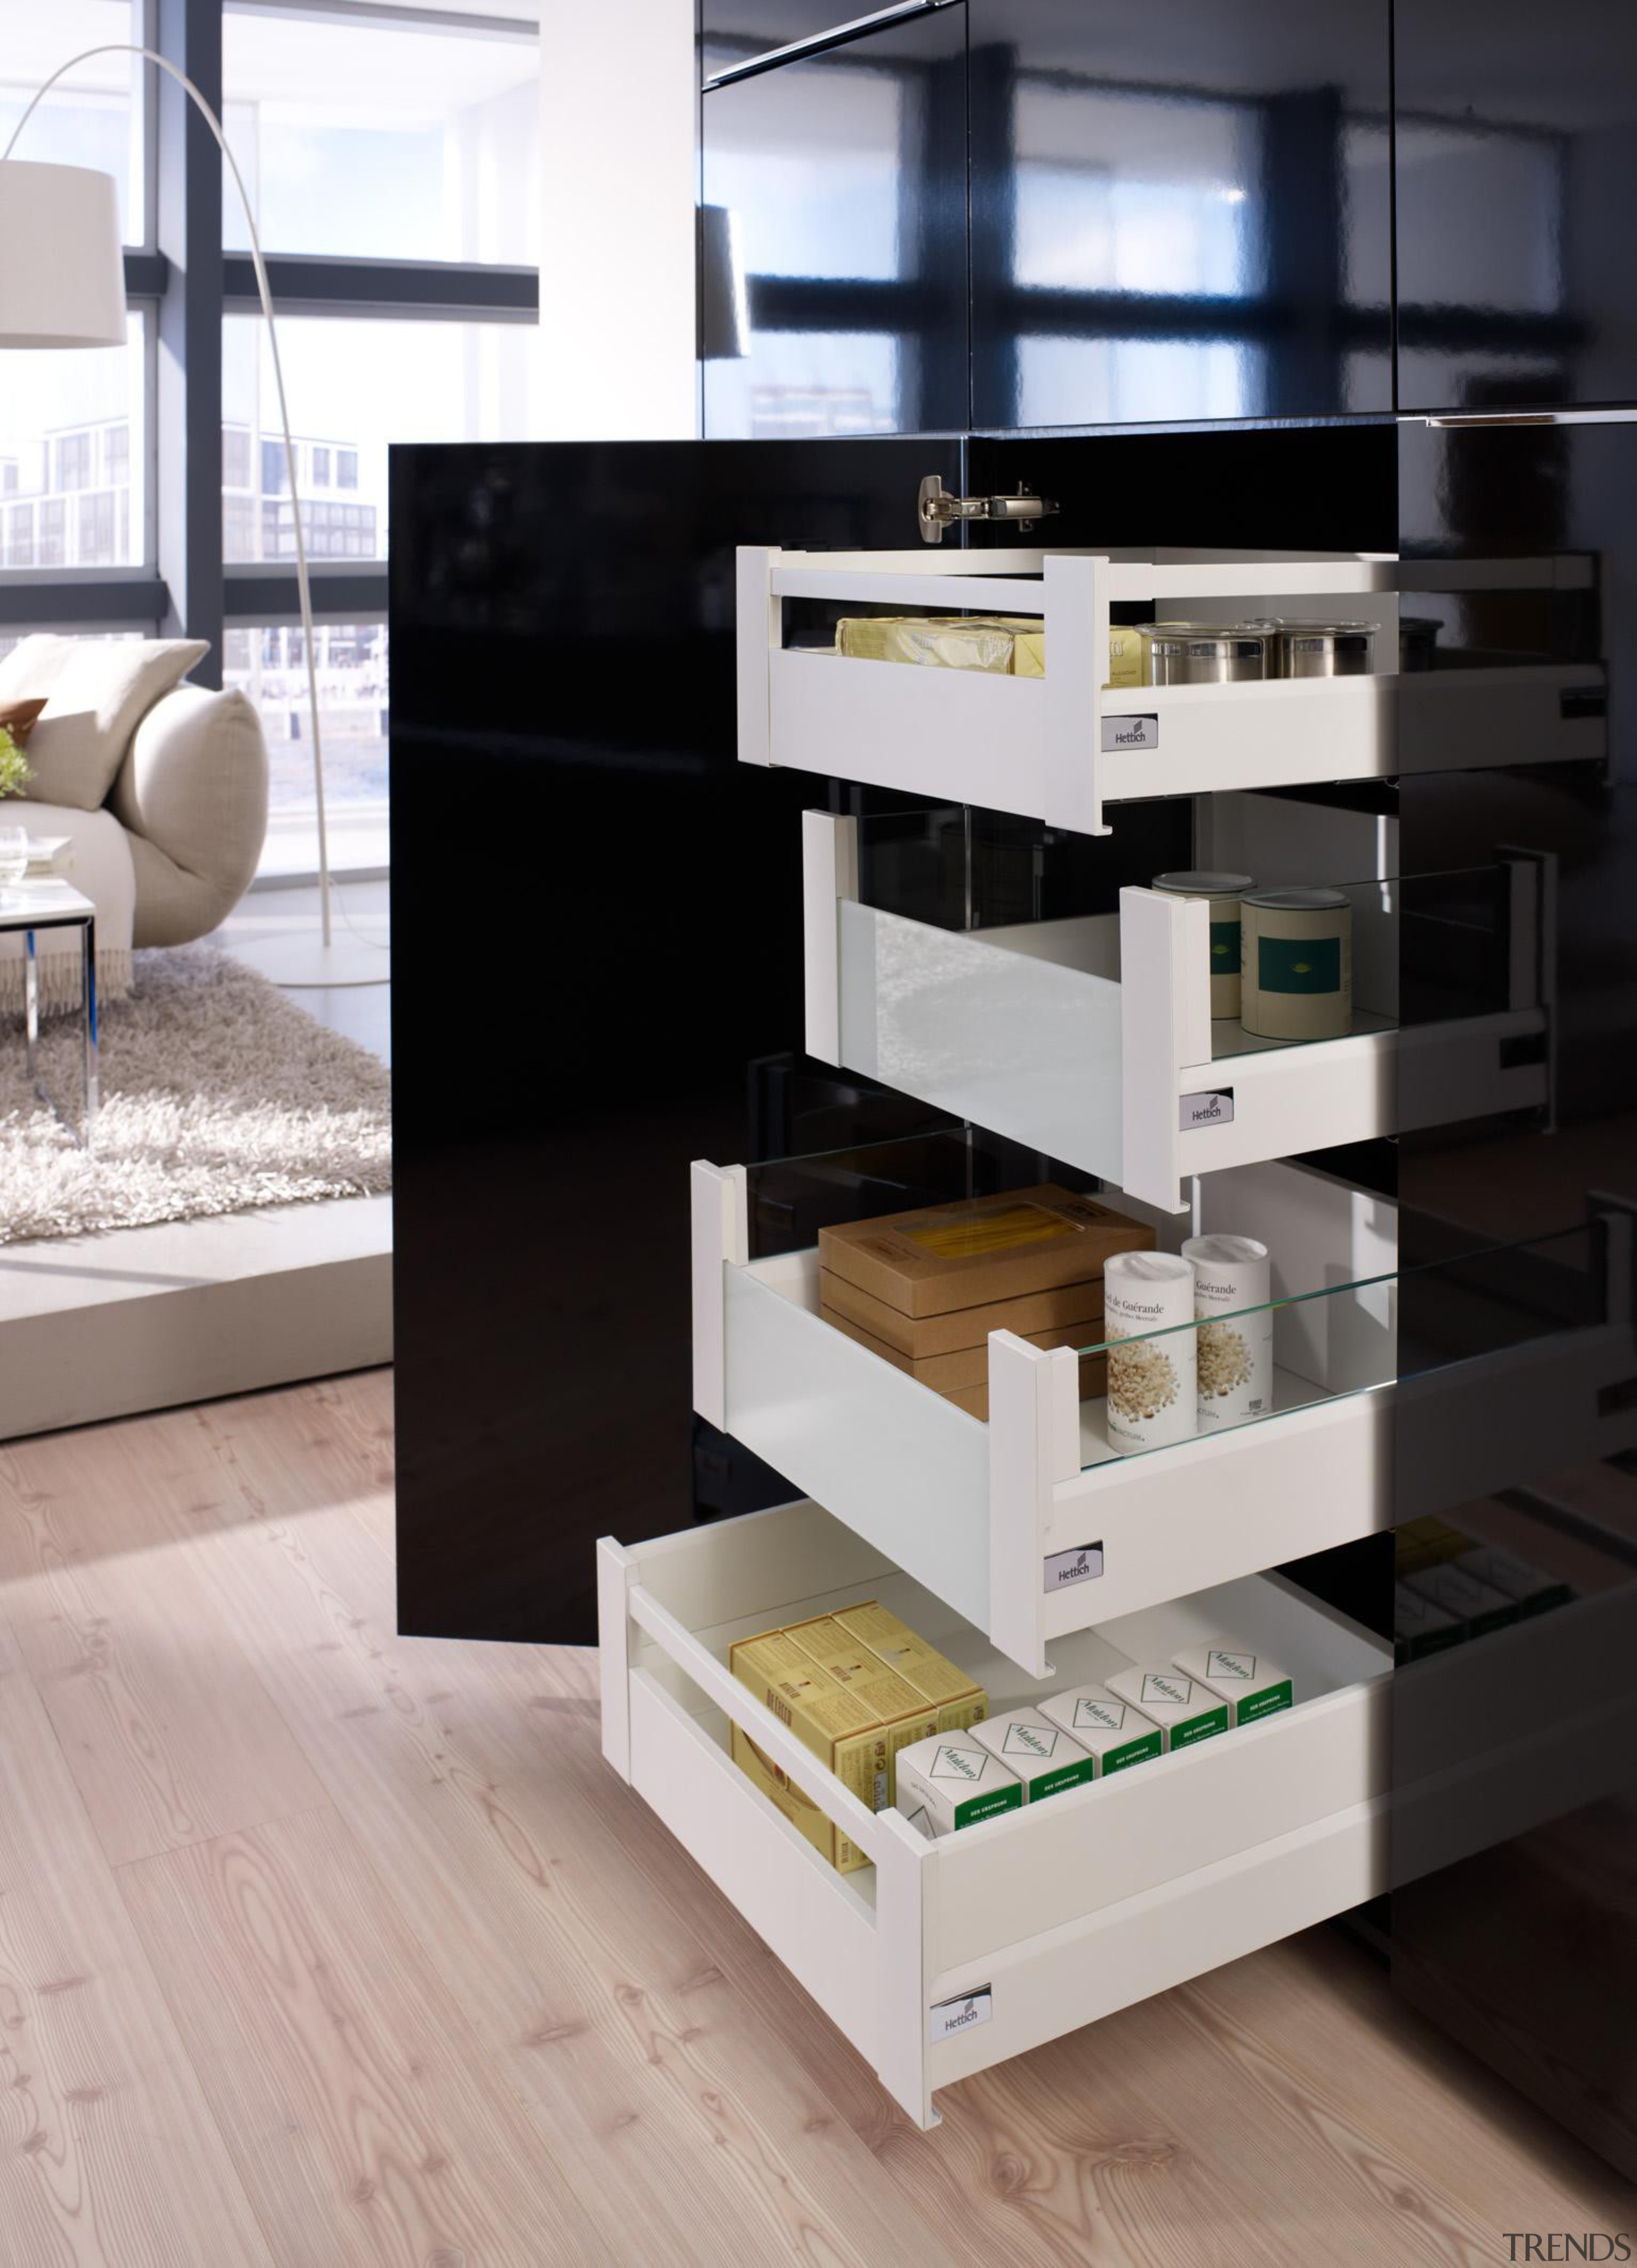 ArciTech's timeless, sleek design fits harmoniously into any chest of drawers, drawer, floor, furniture, product design, shelf, shelving, table, gray, black